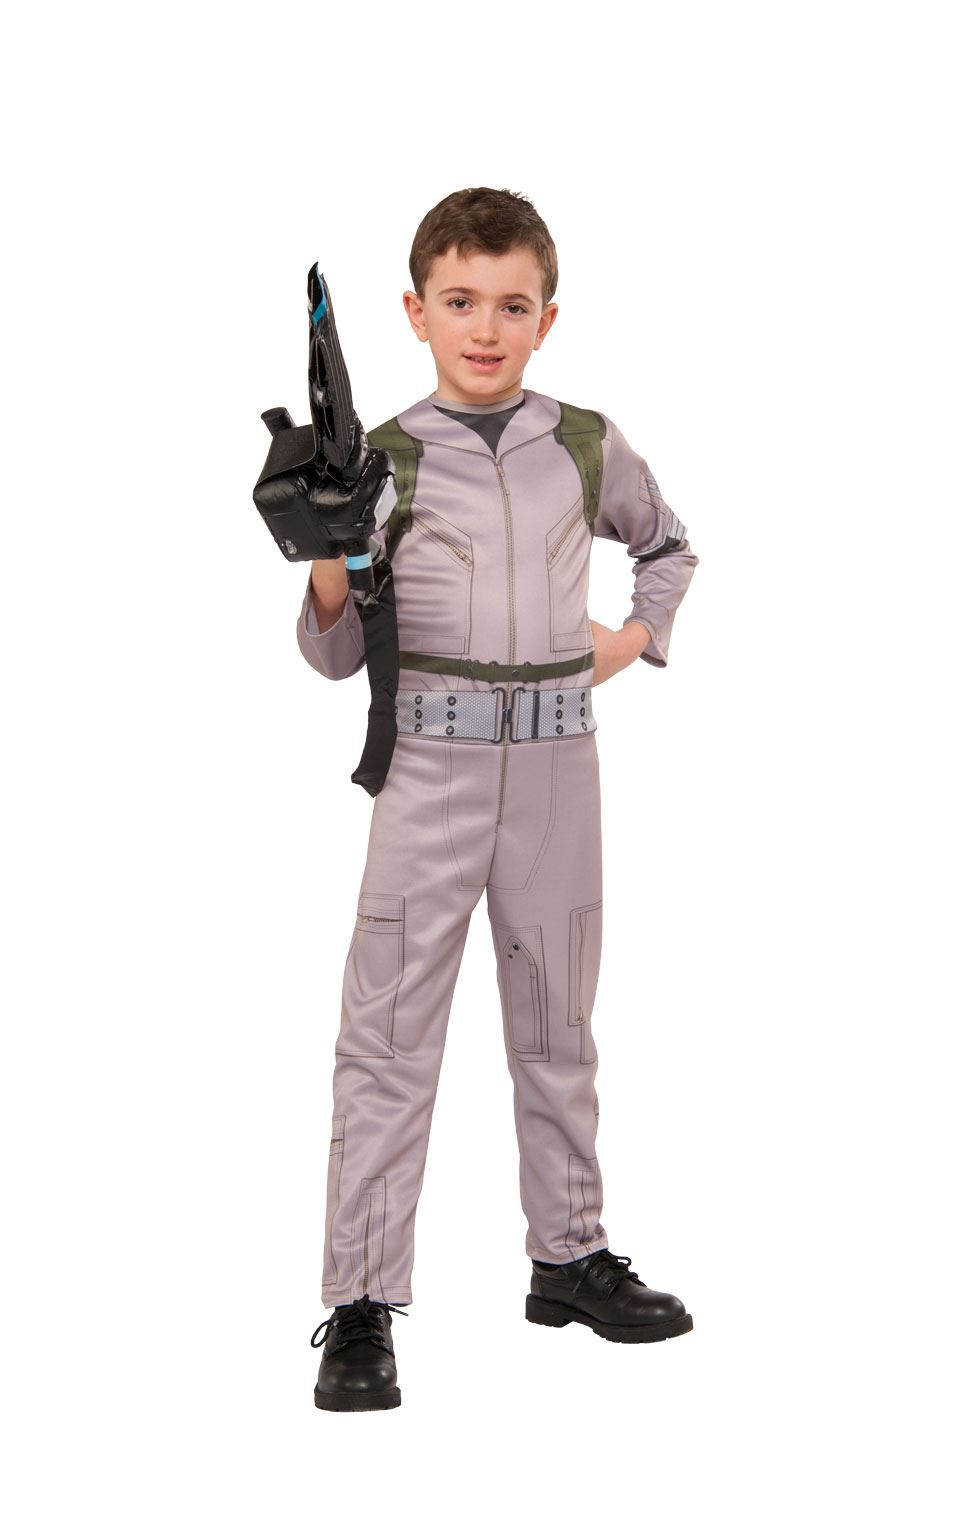 Boys Ghostbusters Costume 80s Movie Halloween Licensed Fancy Dress Kids Outfit